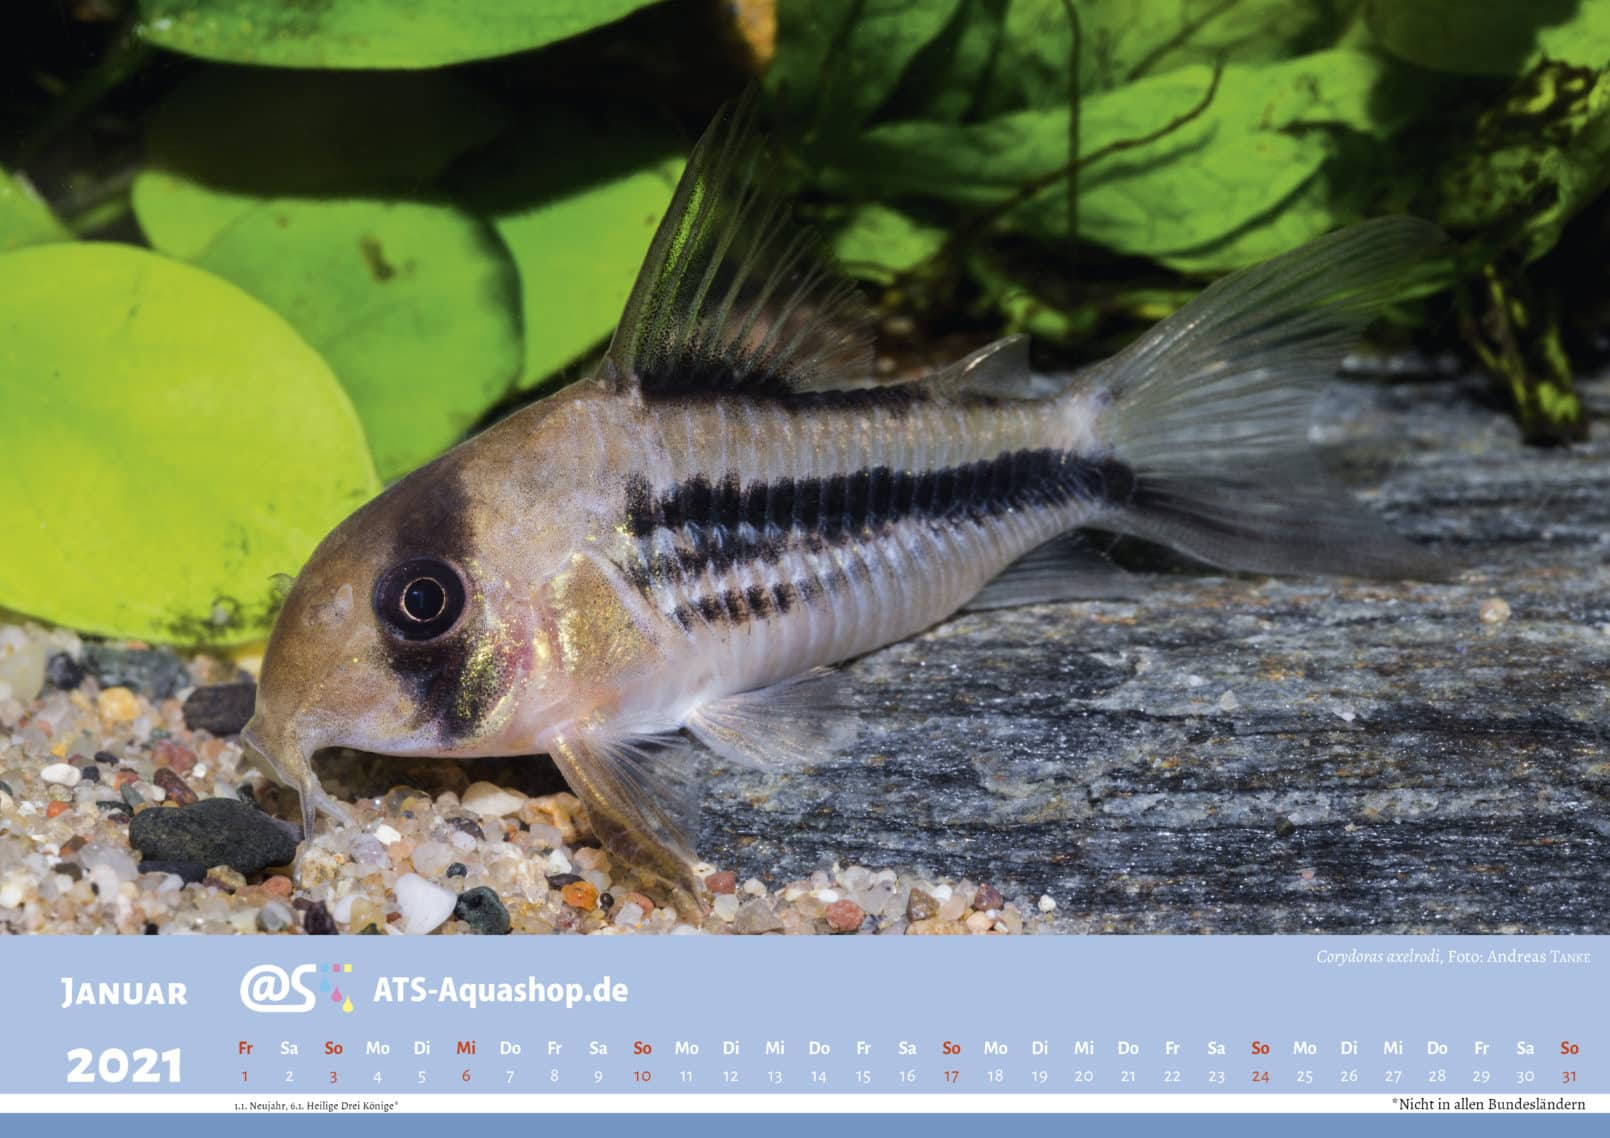 ATS-Aquashop Annual Photo calendar for 2021 DIN A3 (January): Corydoras axelrodi